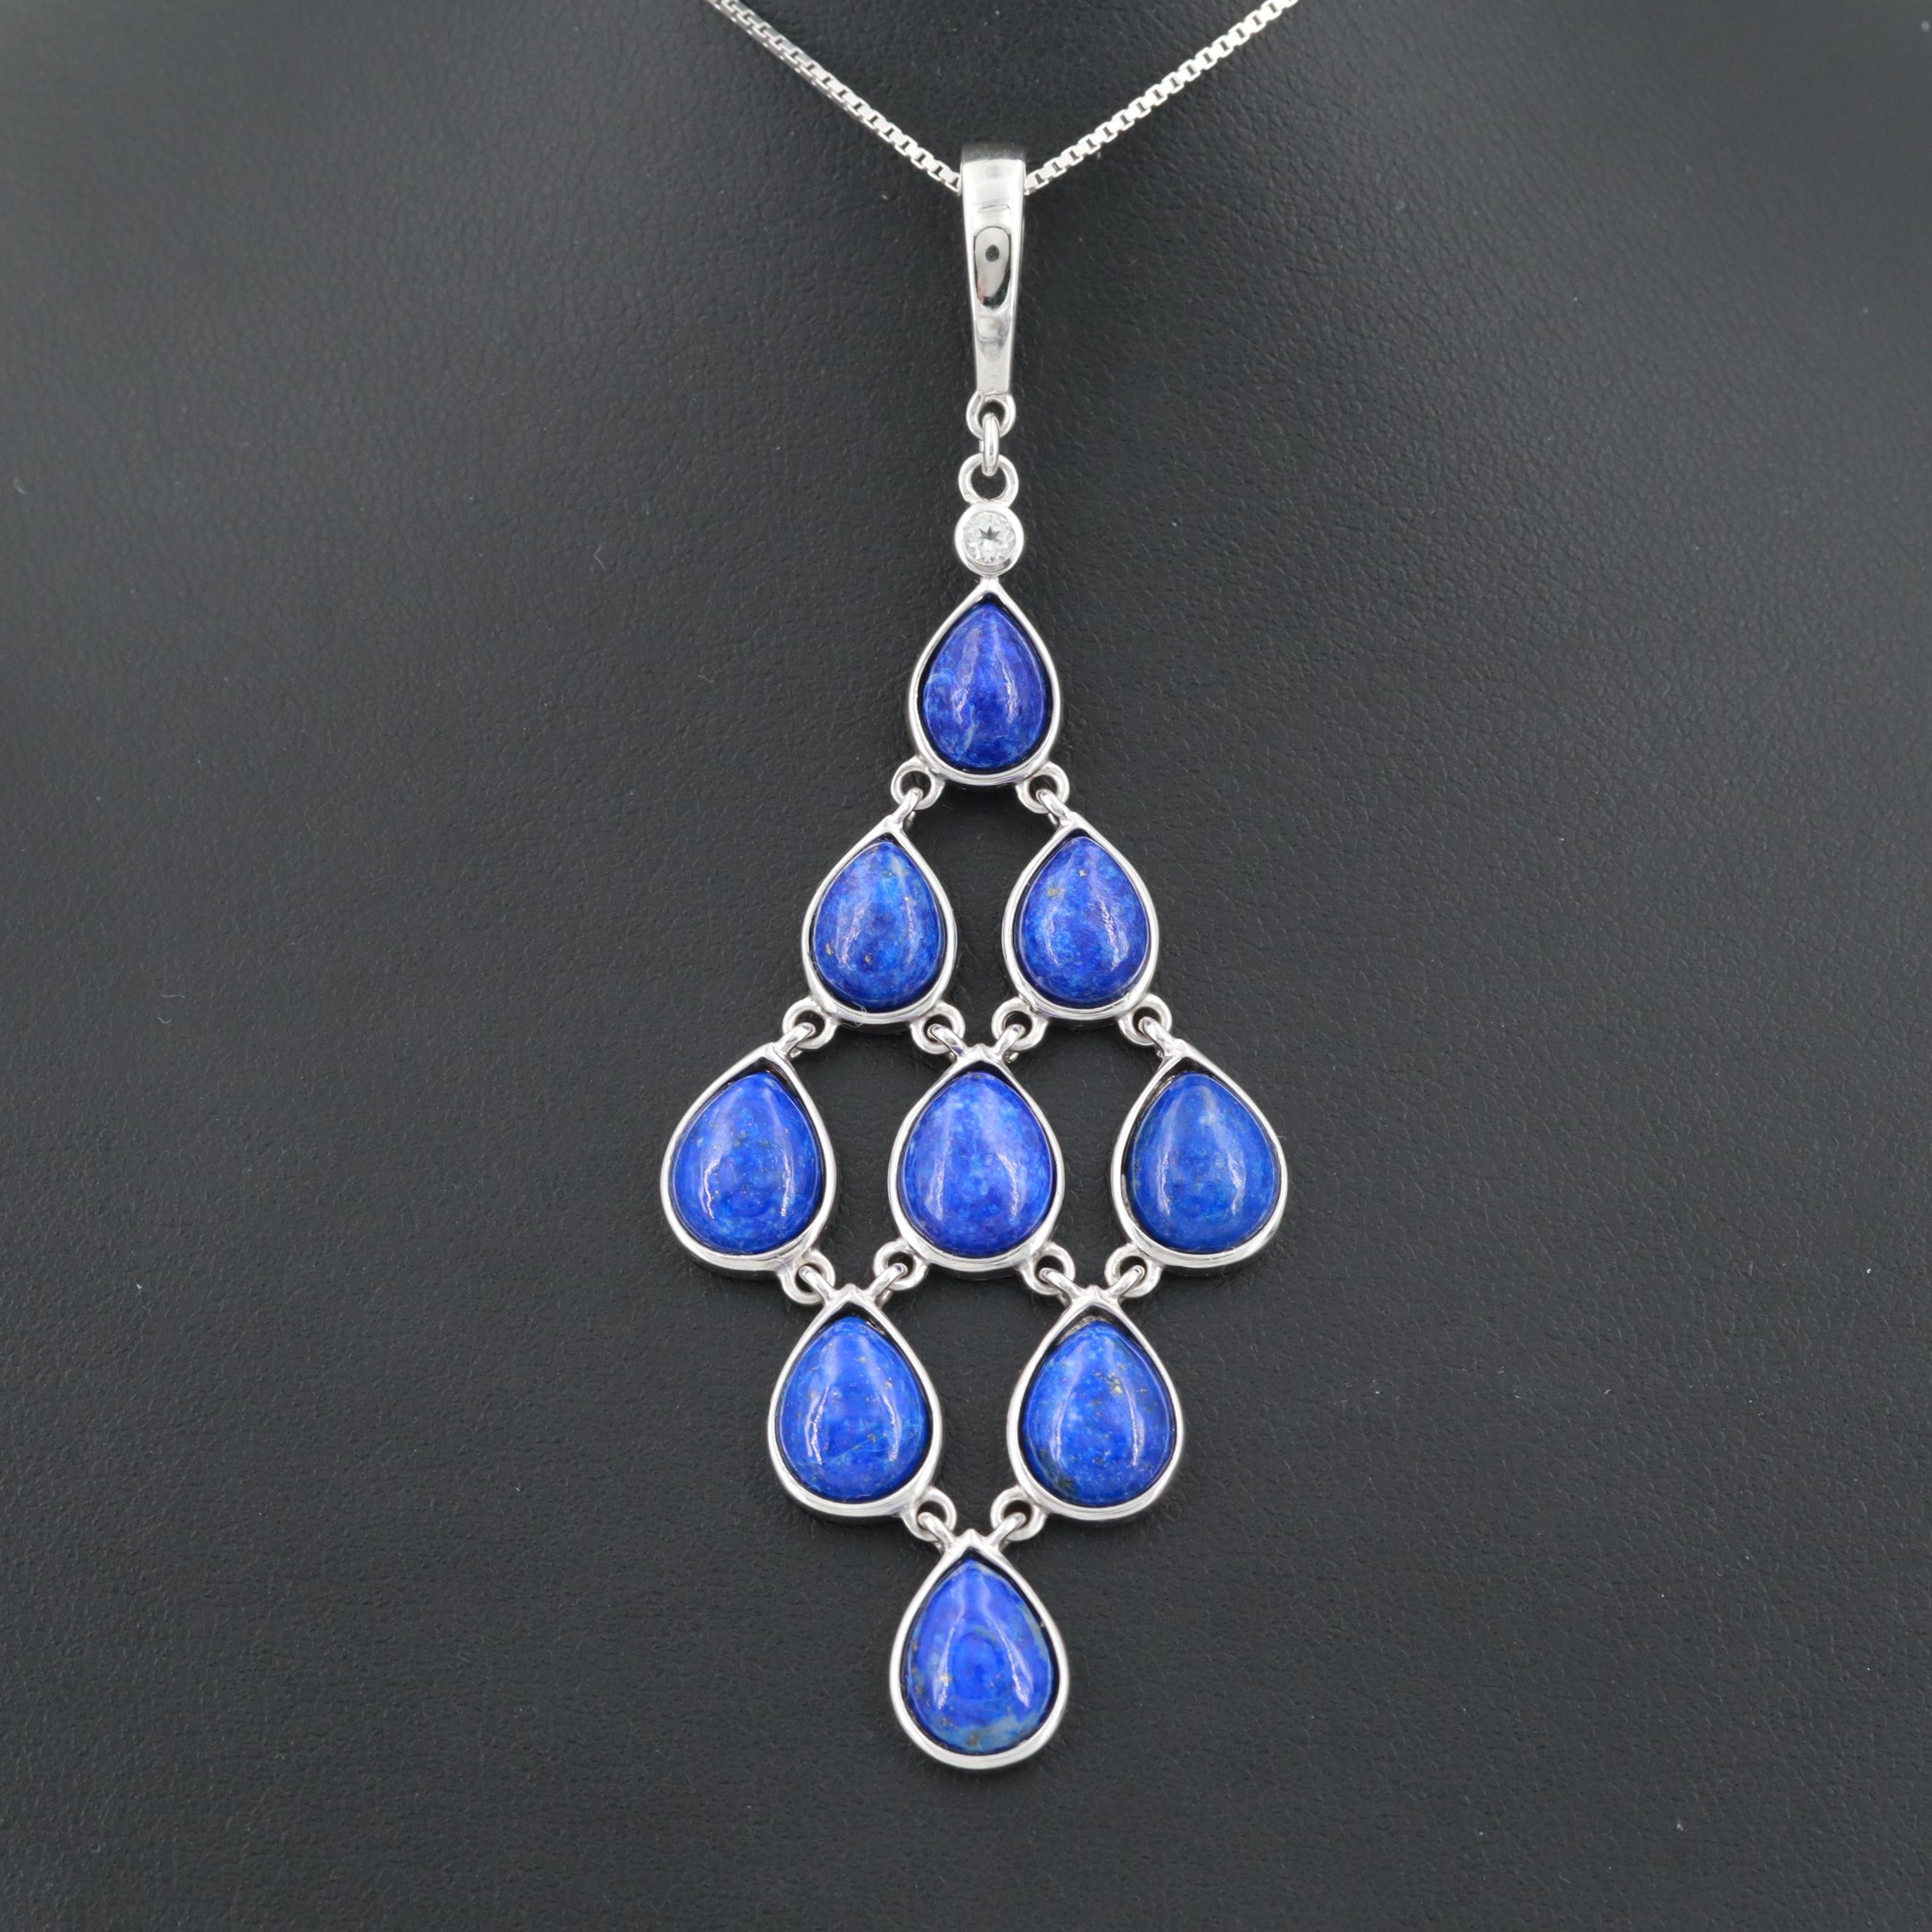 Sterling Silver Lapis Lazuli and White Topaz Enhancer Pendant Necklace